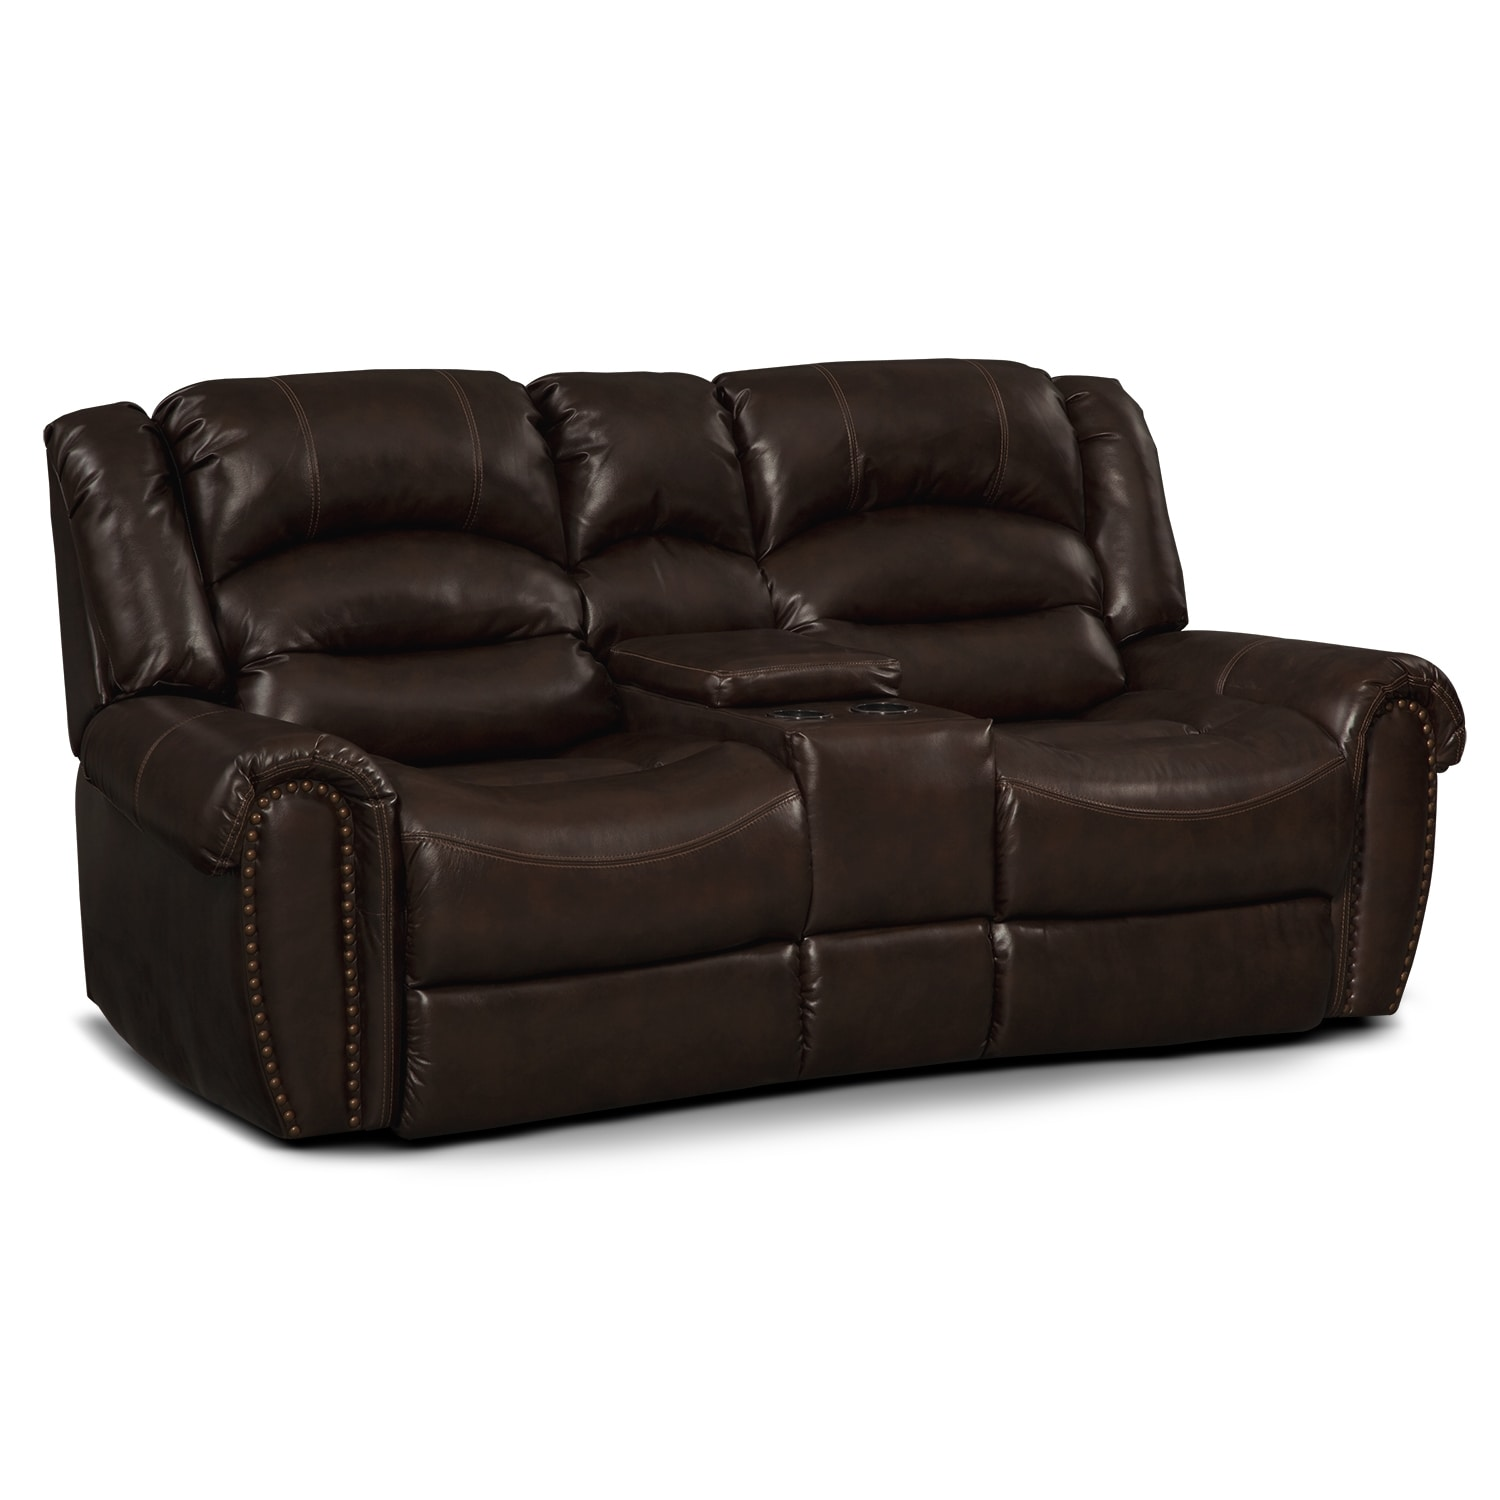 Galveston leather dual reclining loveseat value city furniture Leather reclining sofa loveseat